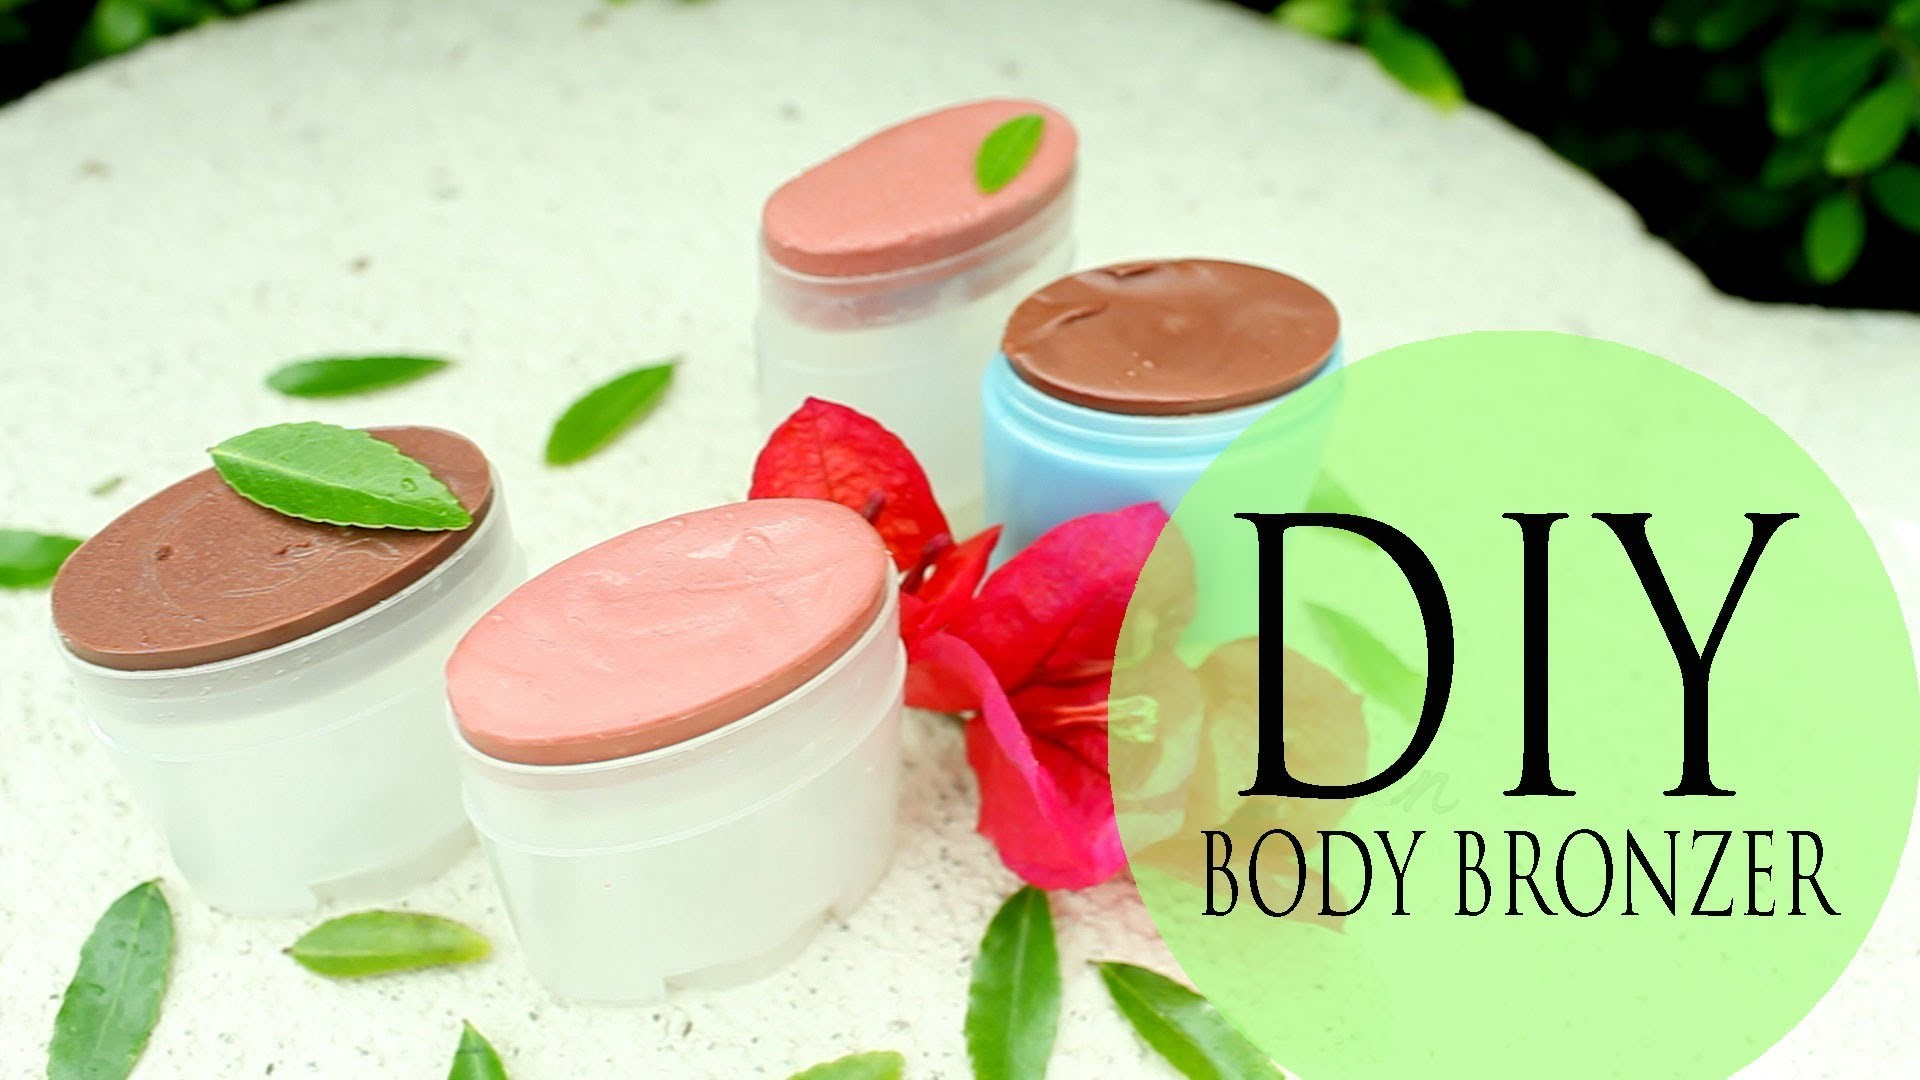 DIY Body Bronzer & Cheek Stain - How to Make Easy Summer Moisturizer by ANNEORSHINE